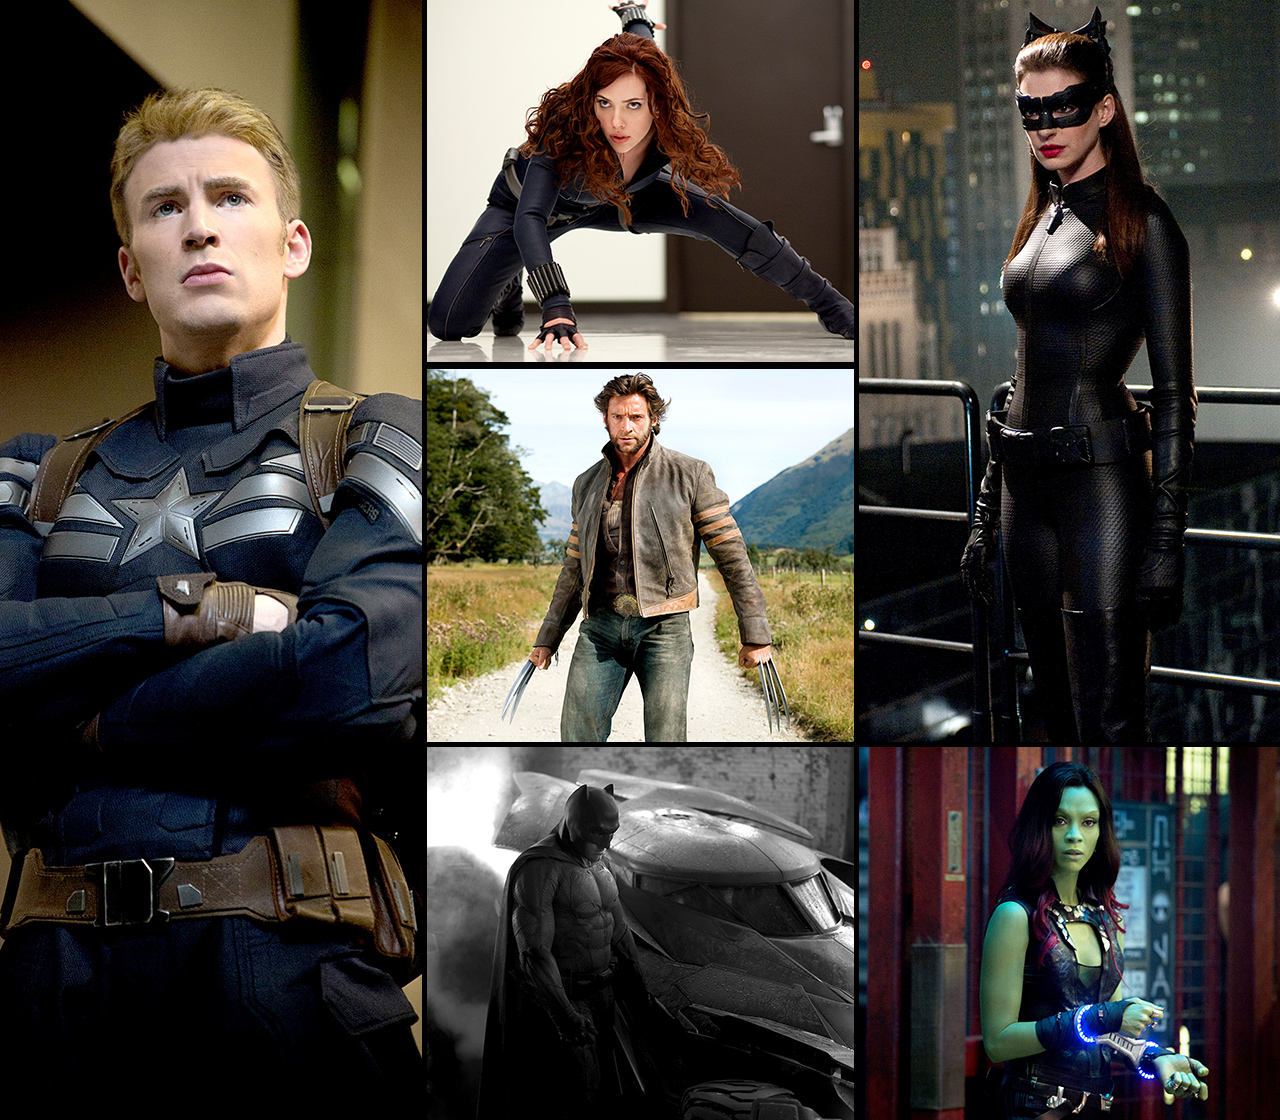 To the rescue! Some of Hollywood's biggest stars have donned tights and capes to save the day as beloved superheroes -- see celebs including Ben Affleck, Chris Evans, and Gwyneth Paltrow as superheroes!